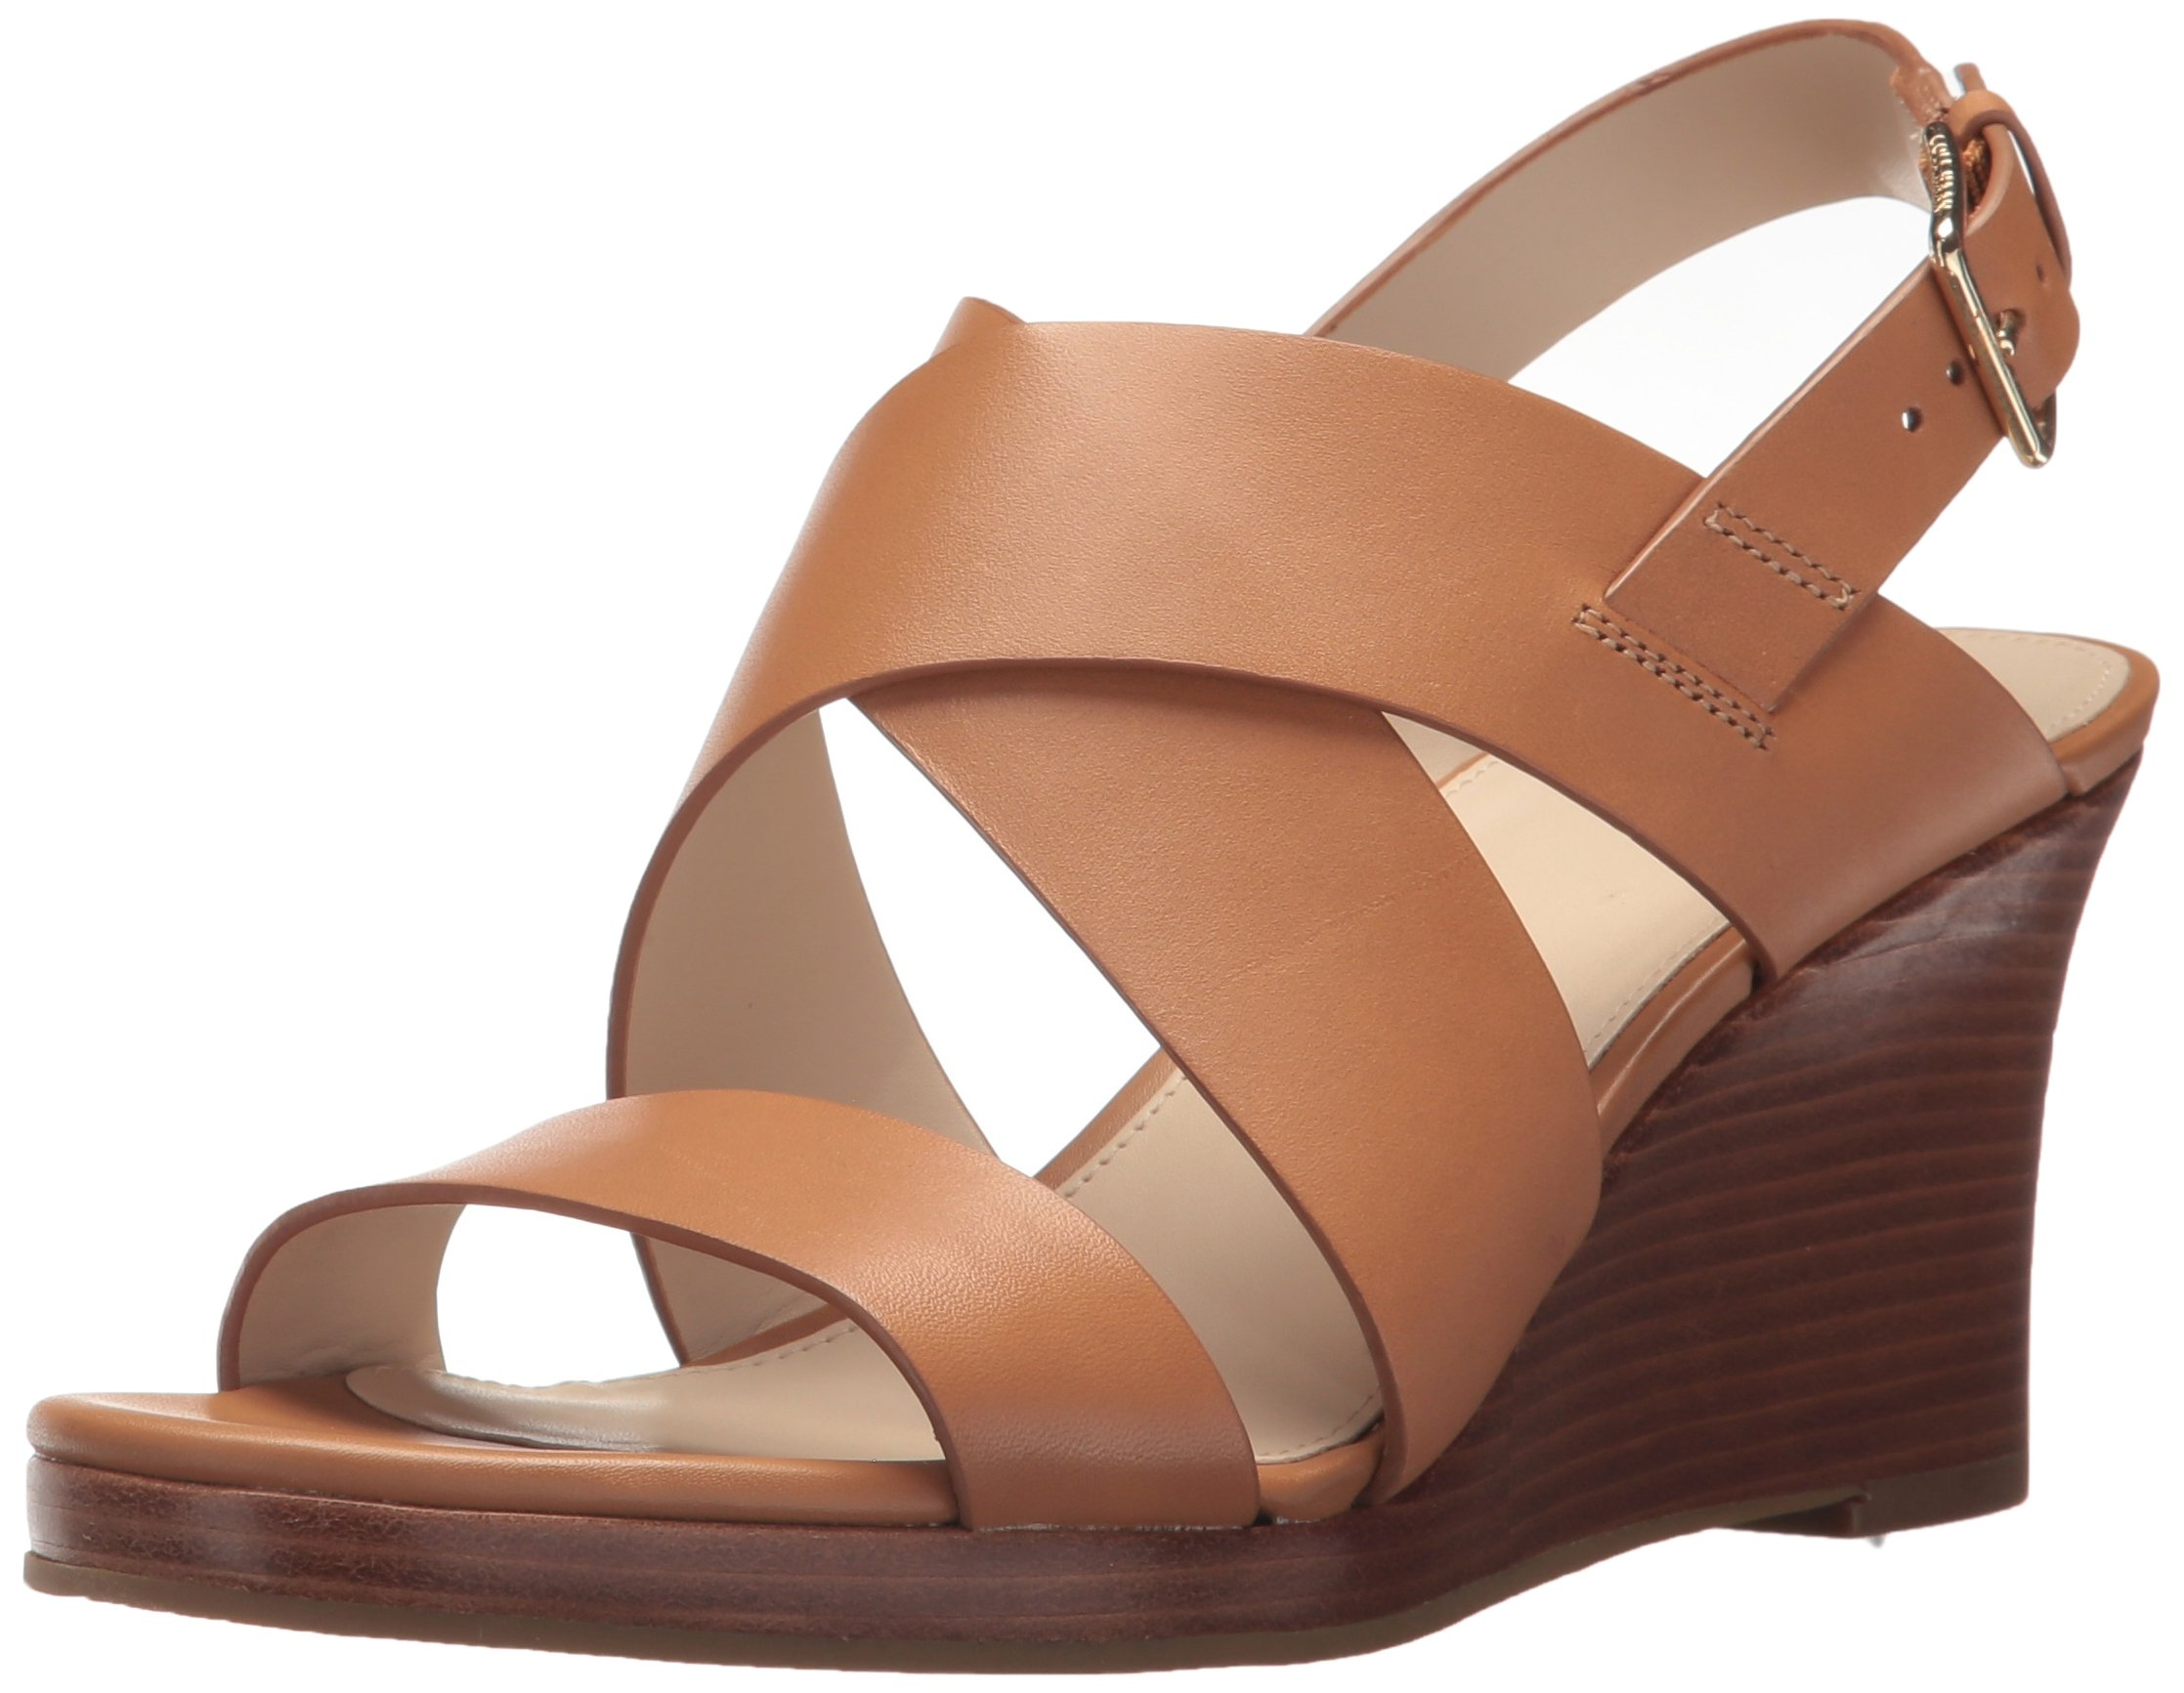 Cole Haan Women's Penelope II Wedge Sandal, Pecan Leather, 7.5 B US